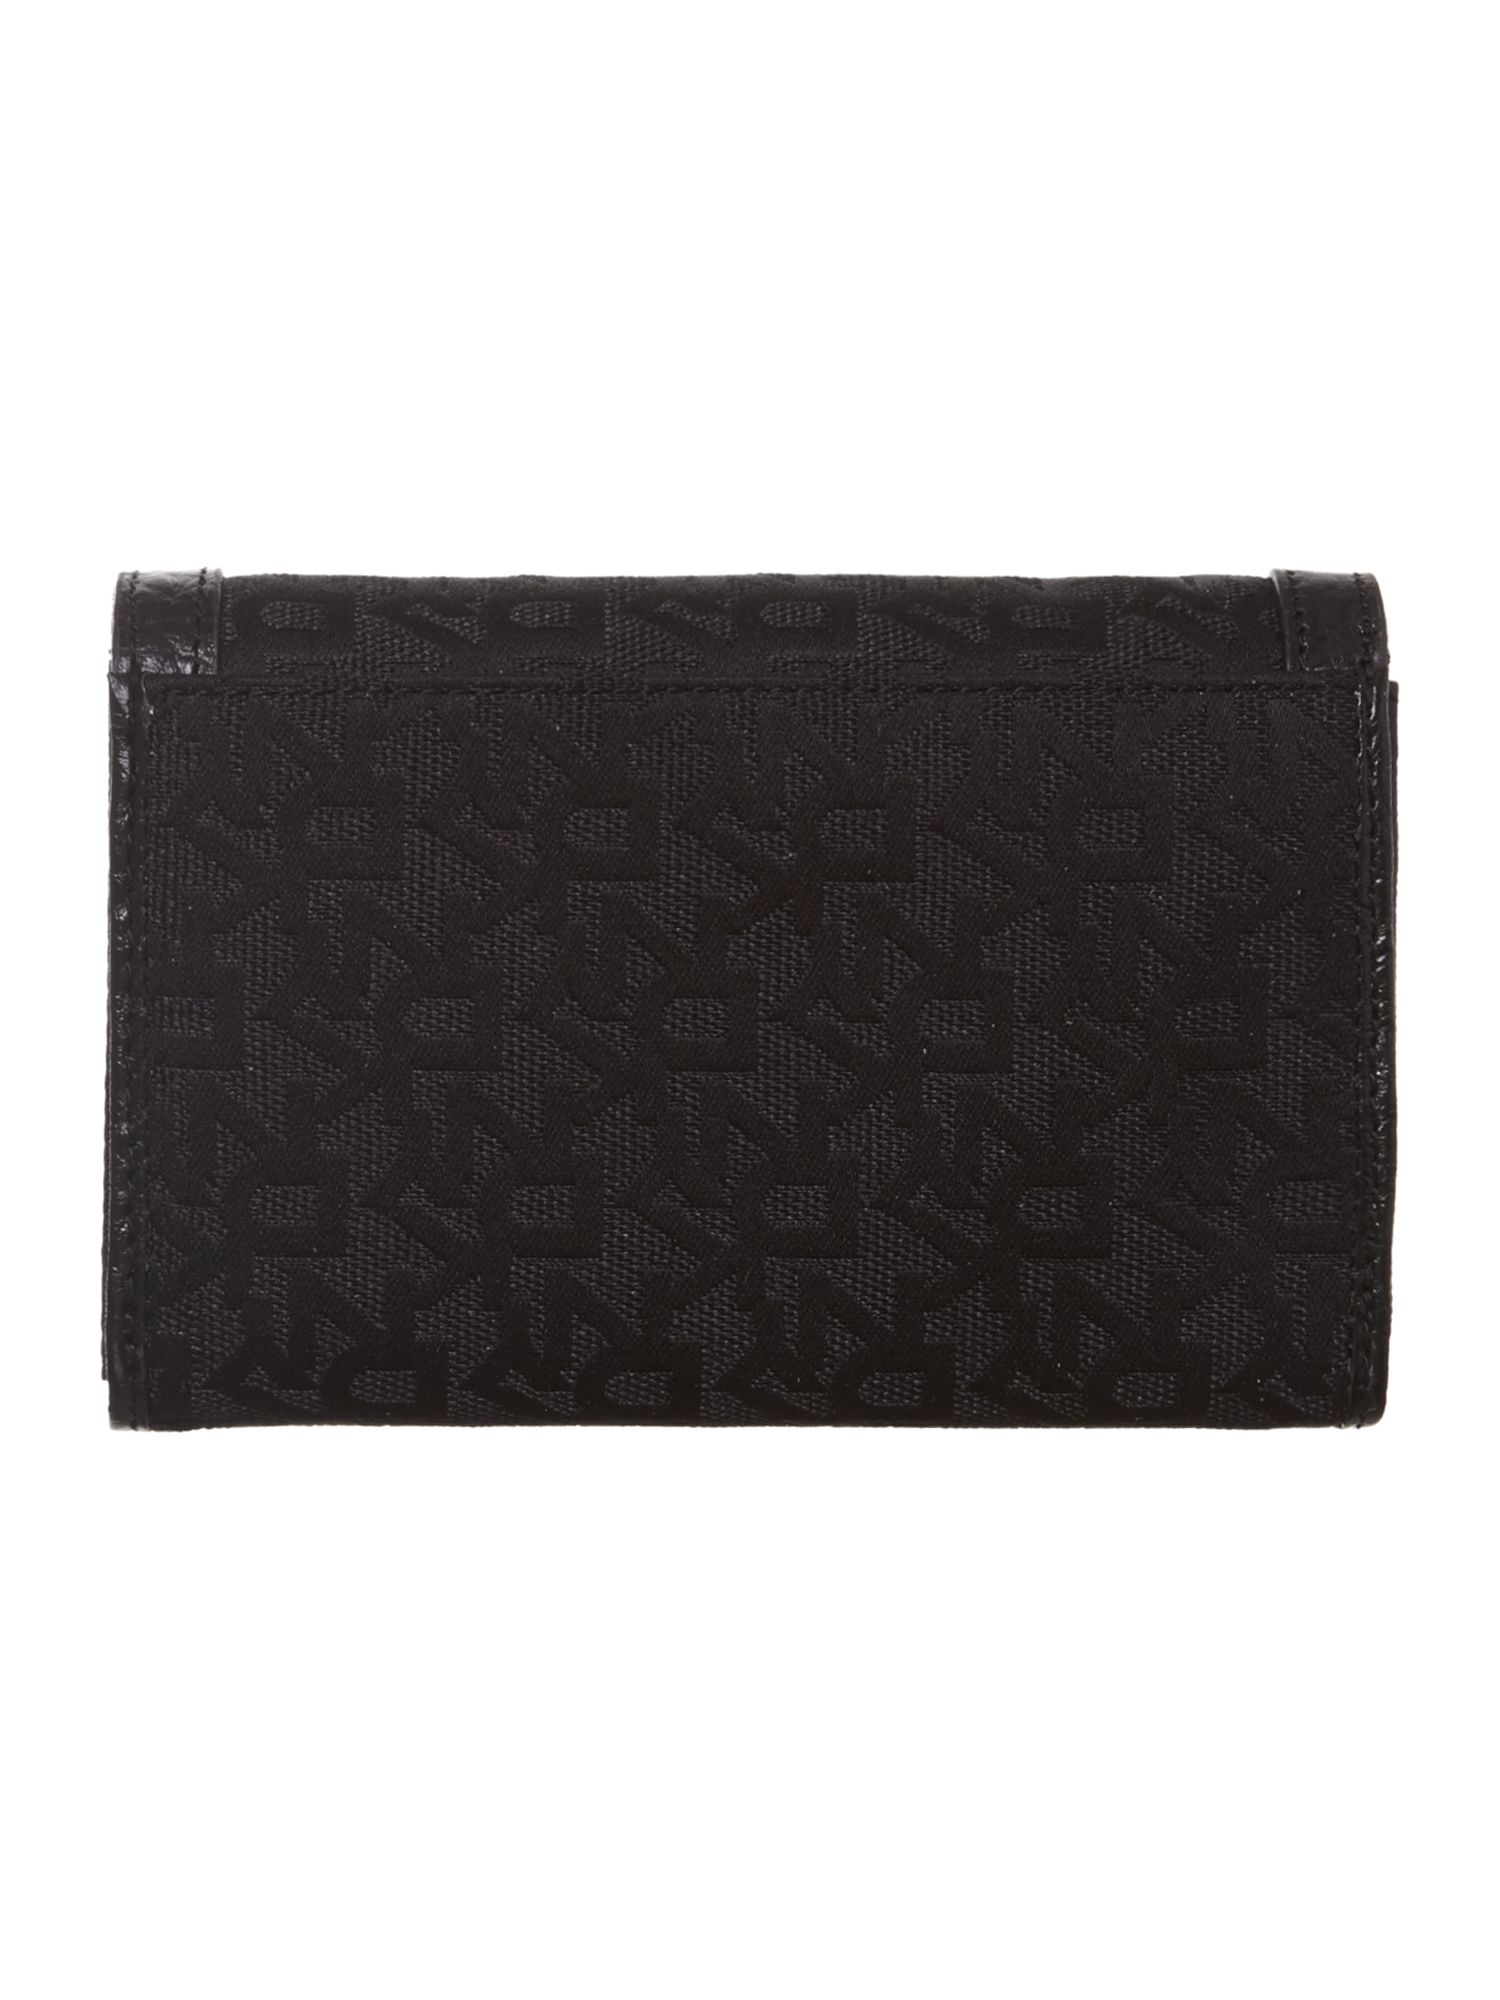 T&C french grain medium black flap over purse